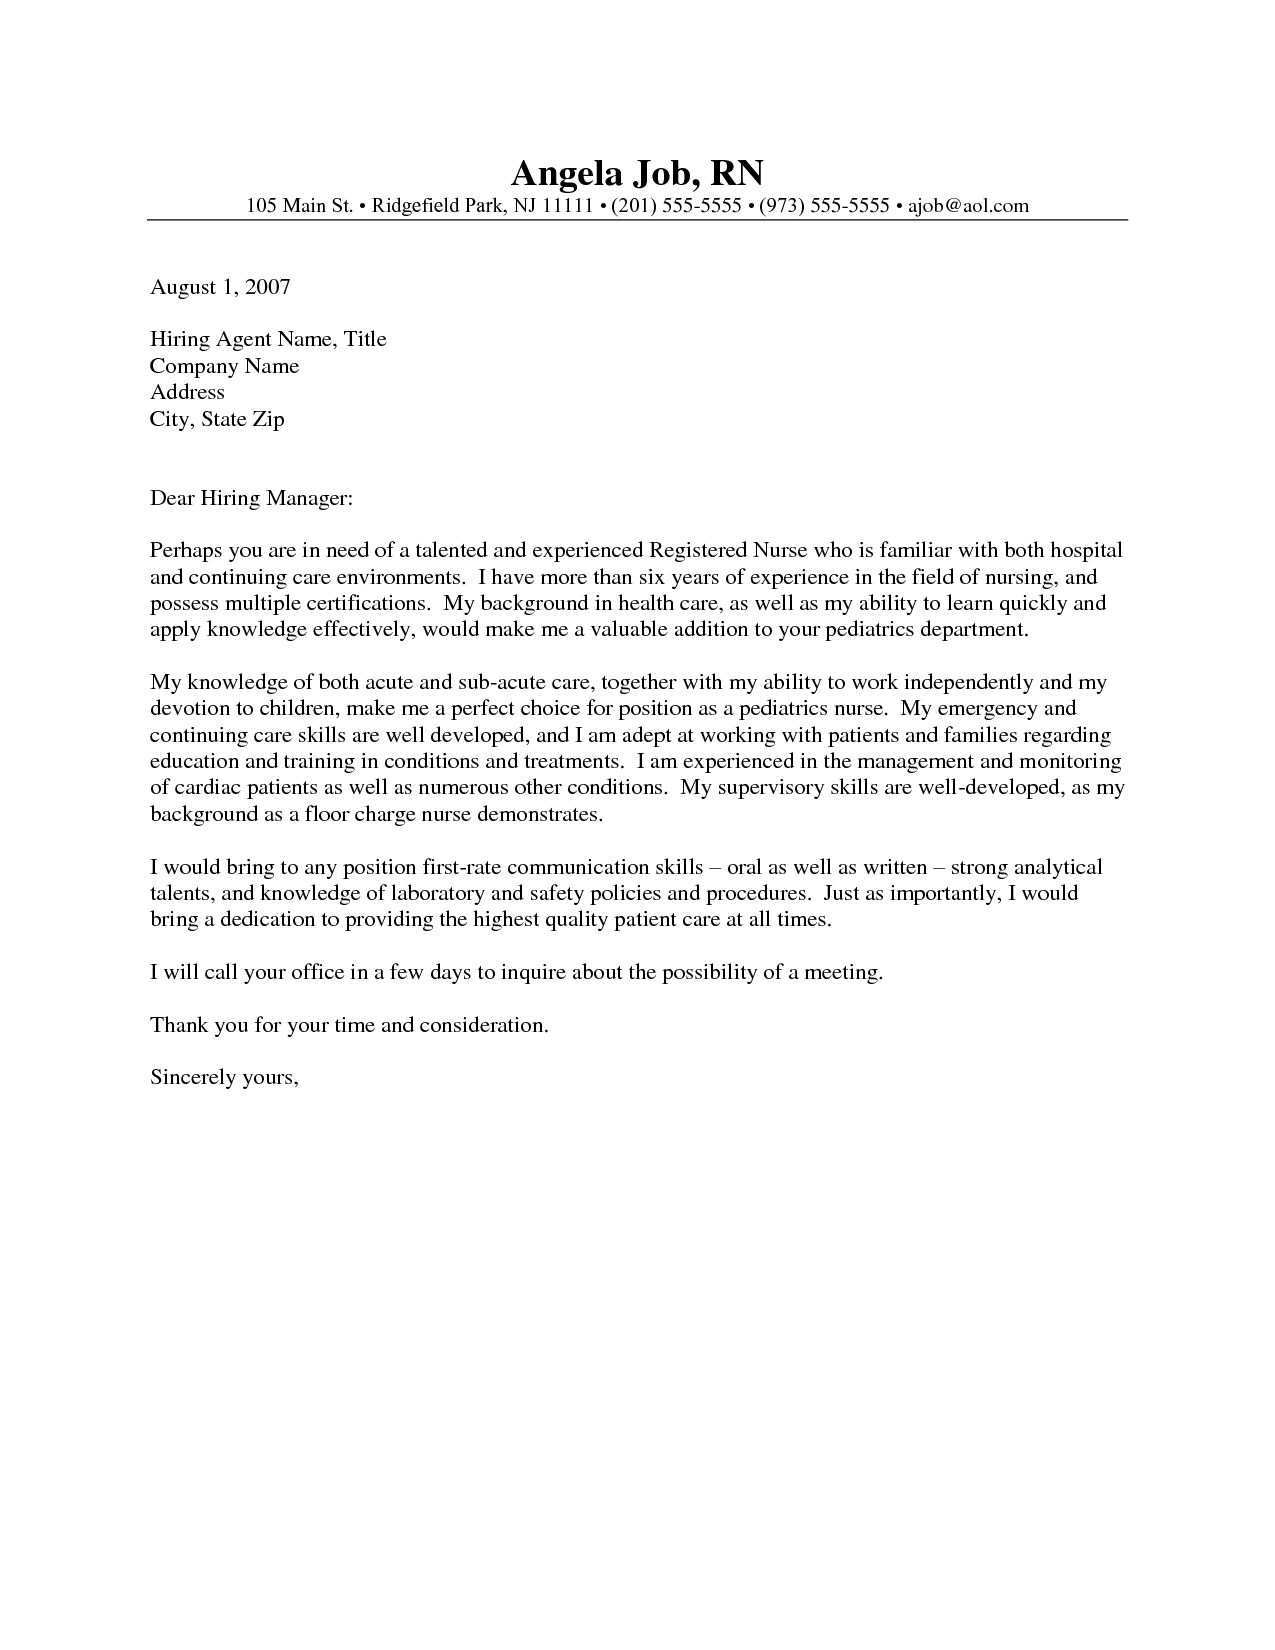 How to write a nursing job cover letter August 18